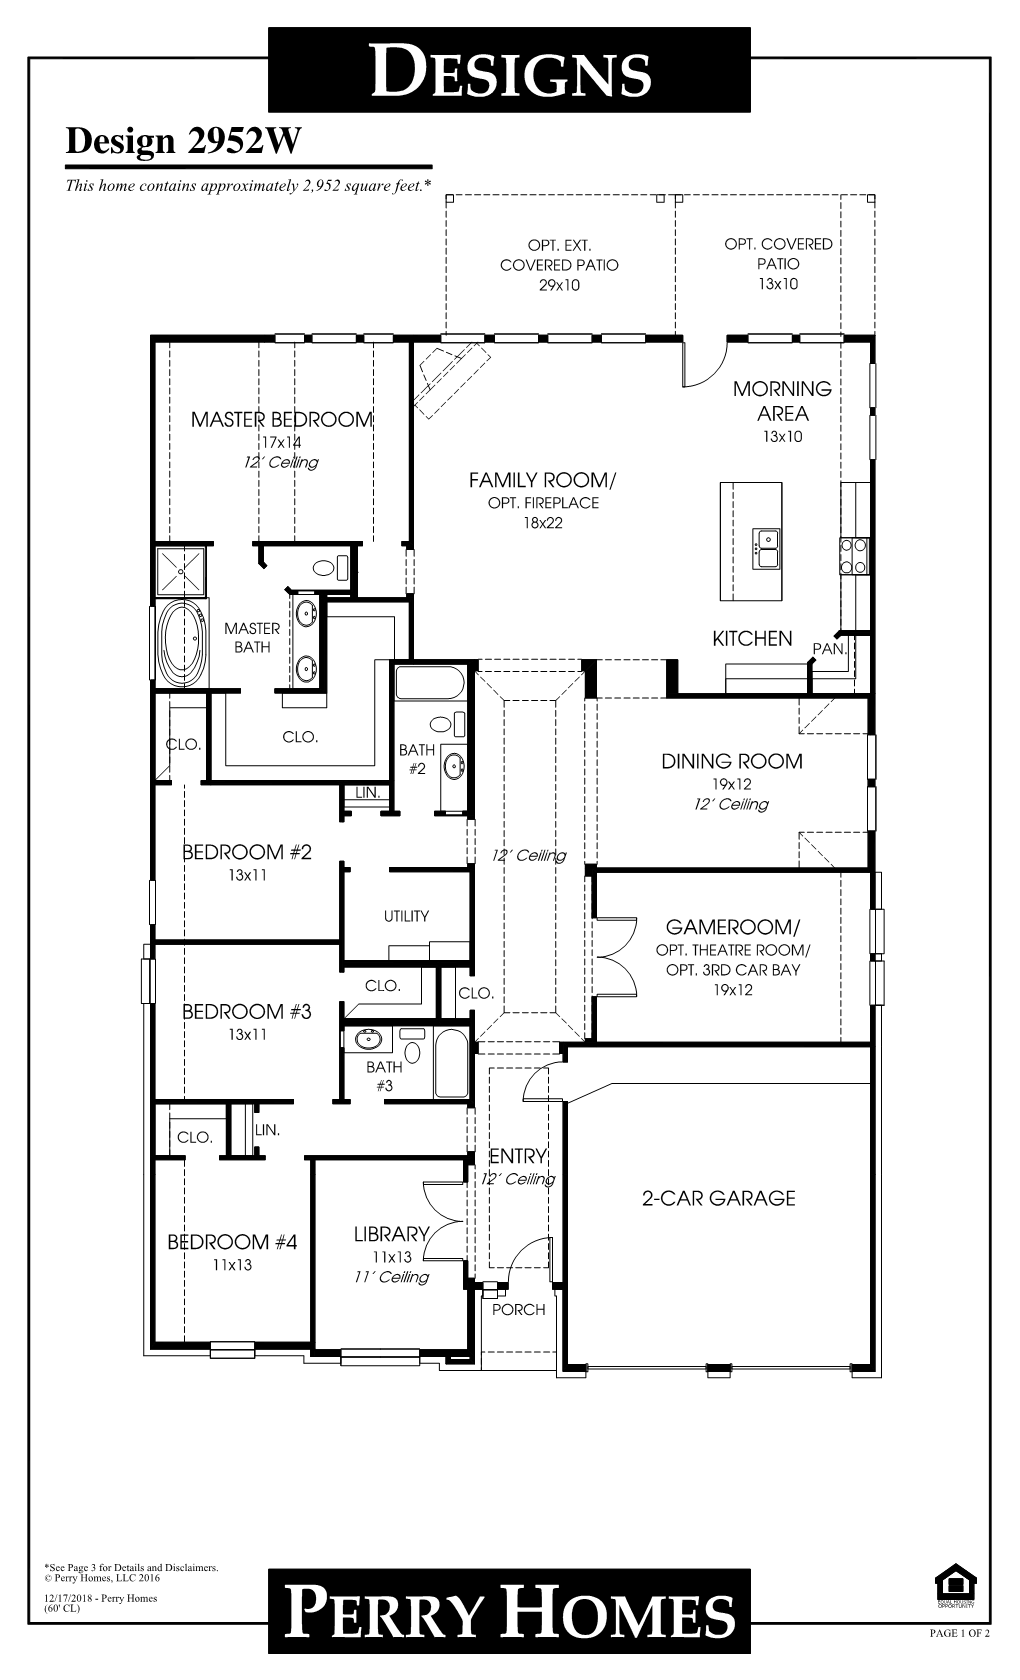 Floor Plan for 2952W